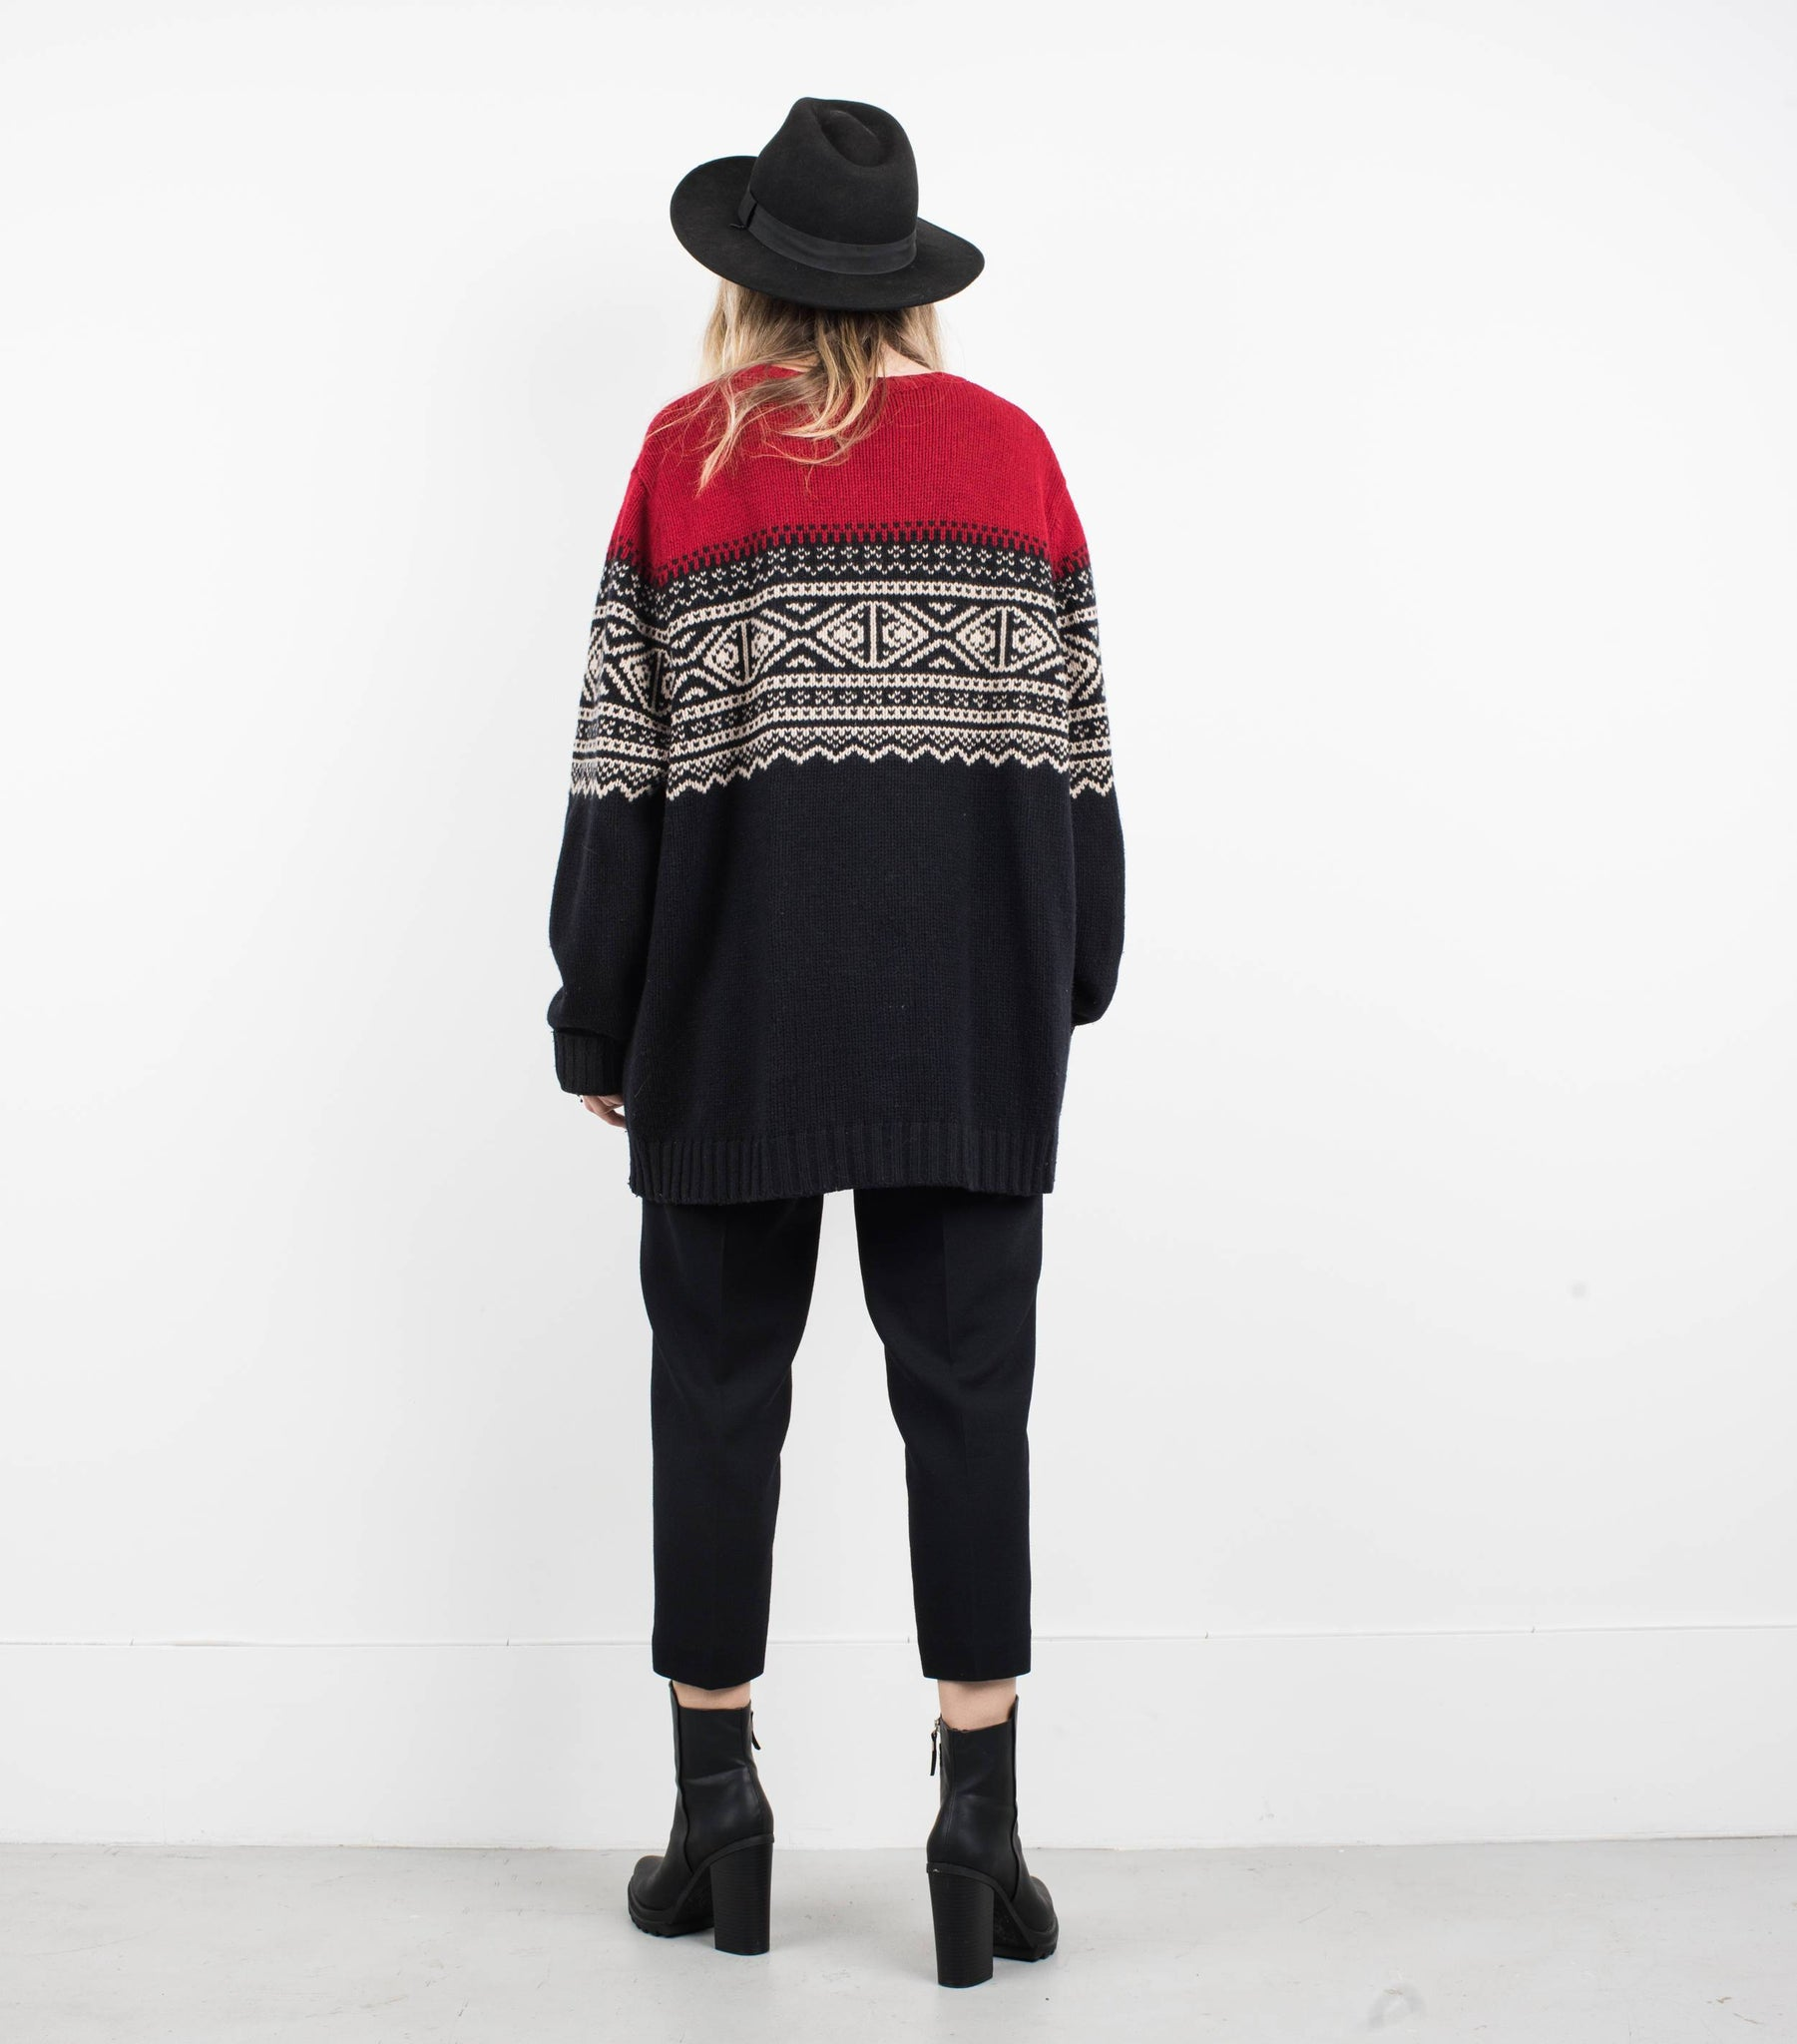 Vintage Oversized Red/Black/Creme Knit Sweater XS/S - Closed Caption